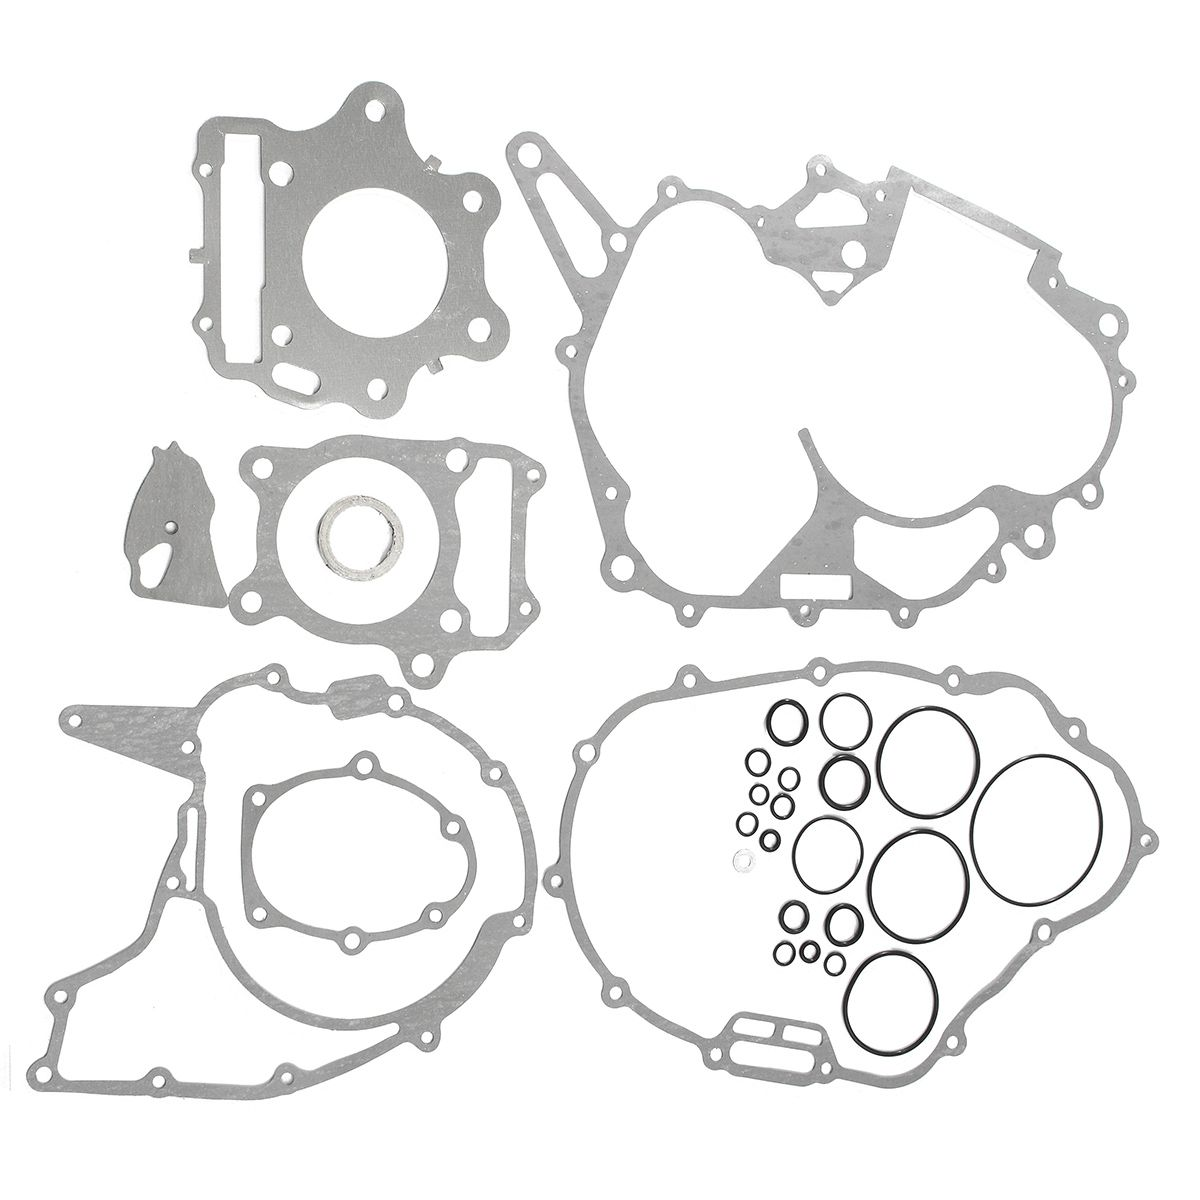 Federal mogul premium engine rebuild kits mkp6334 300 free shipping on orders over 99 at summit racing zj nv4500 swap pinterest engine rebuild kits